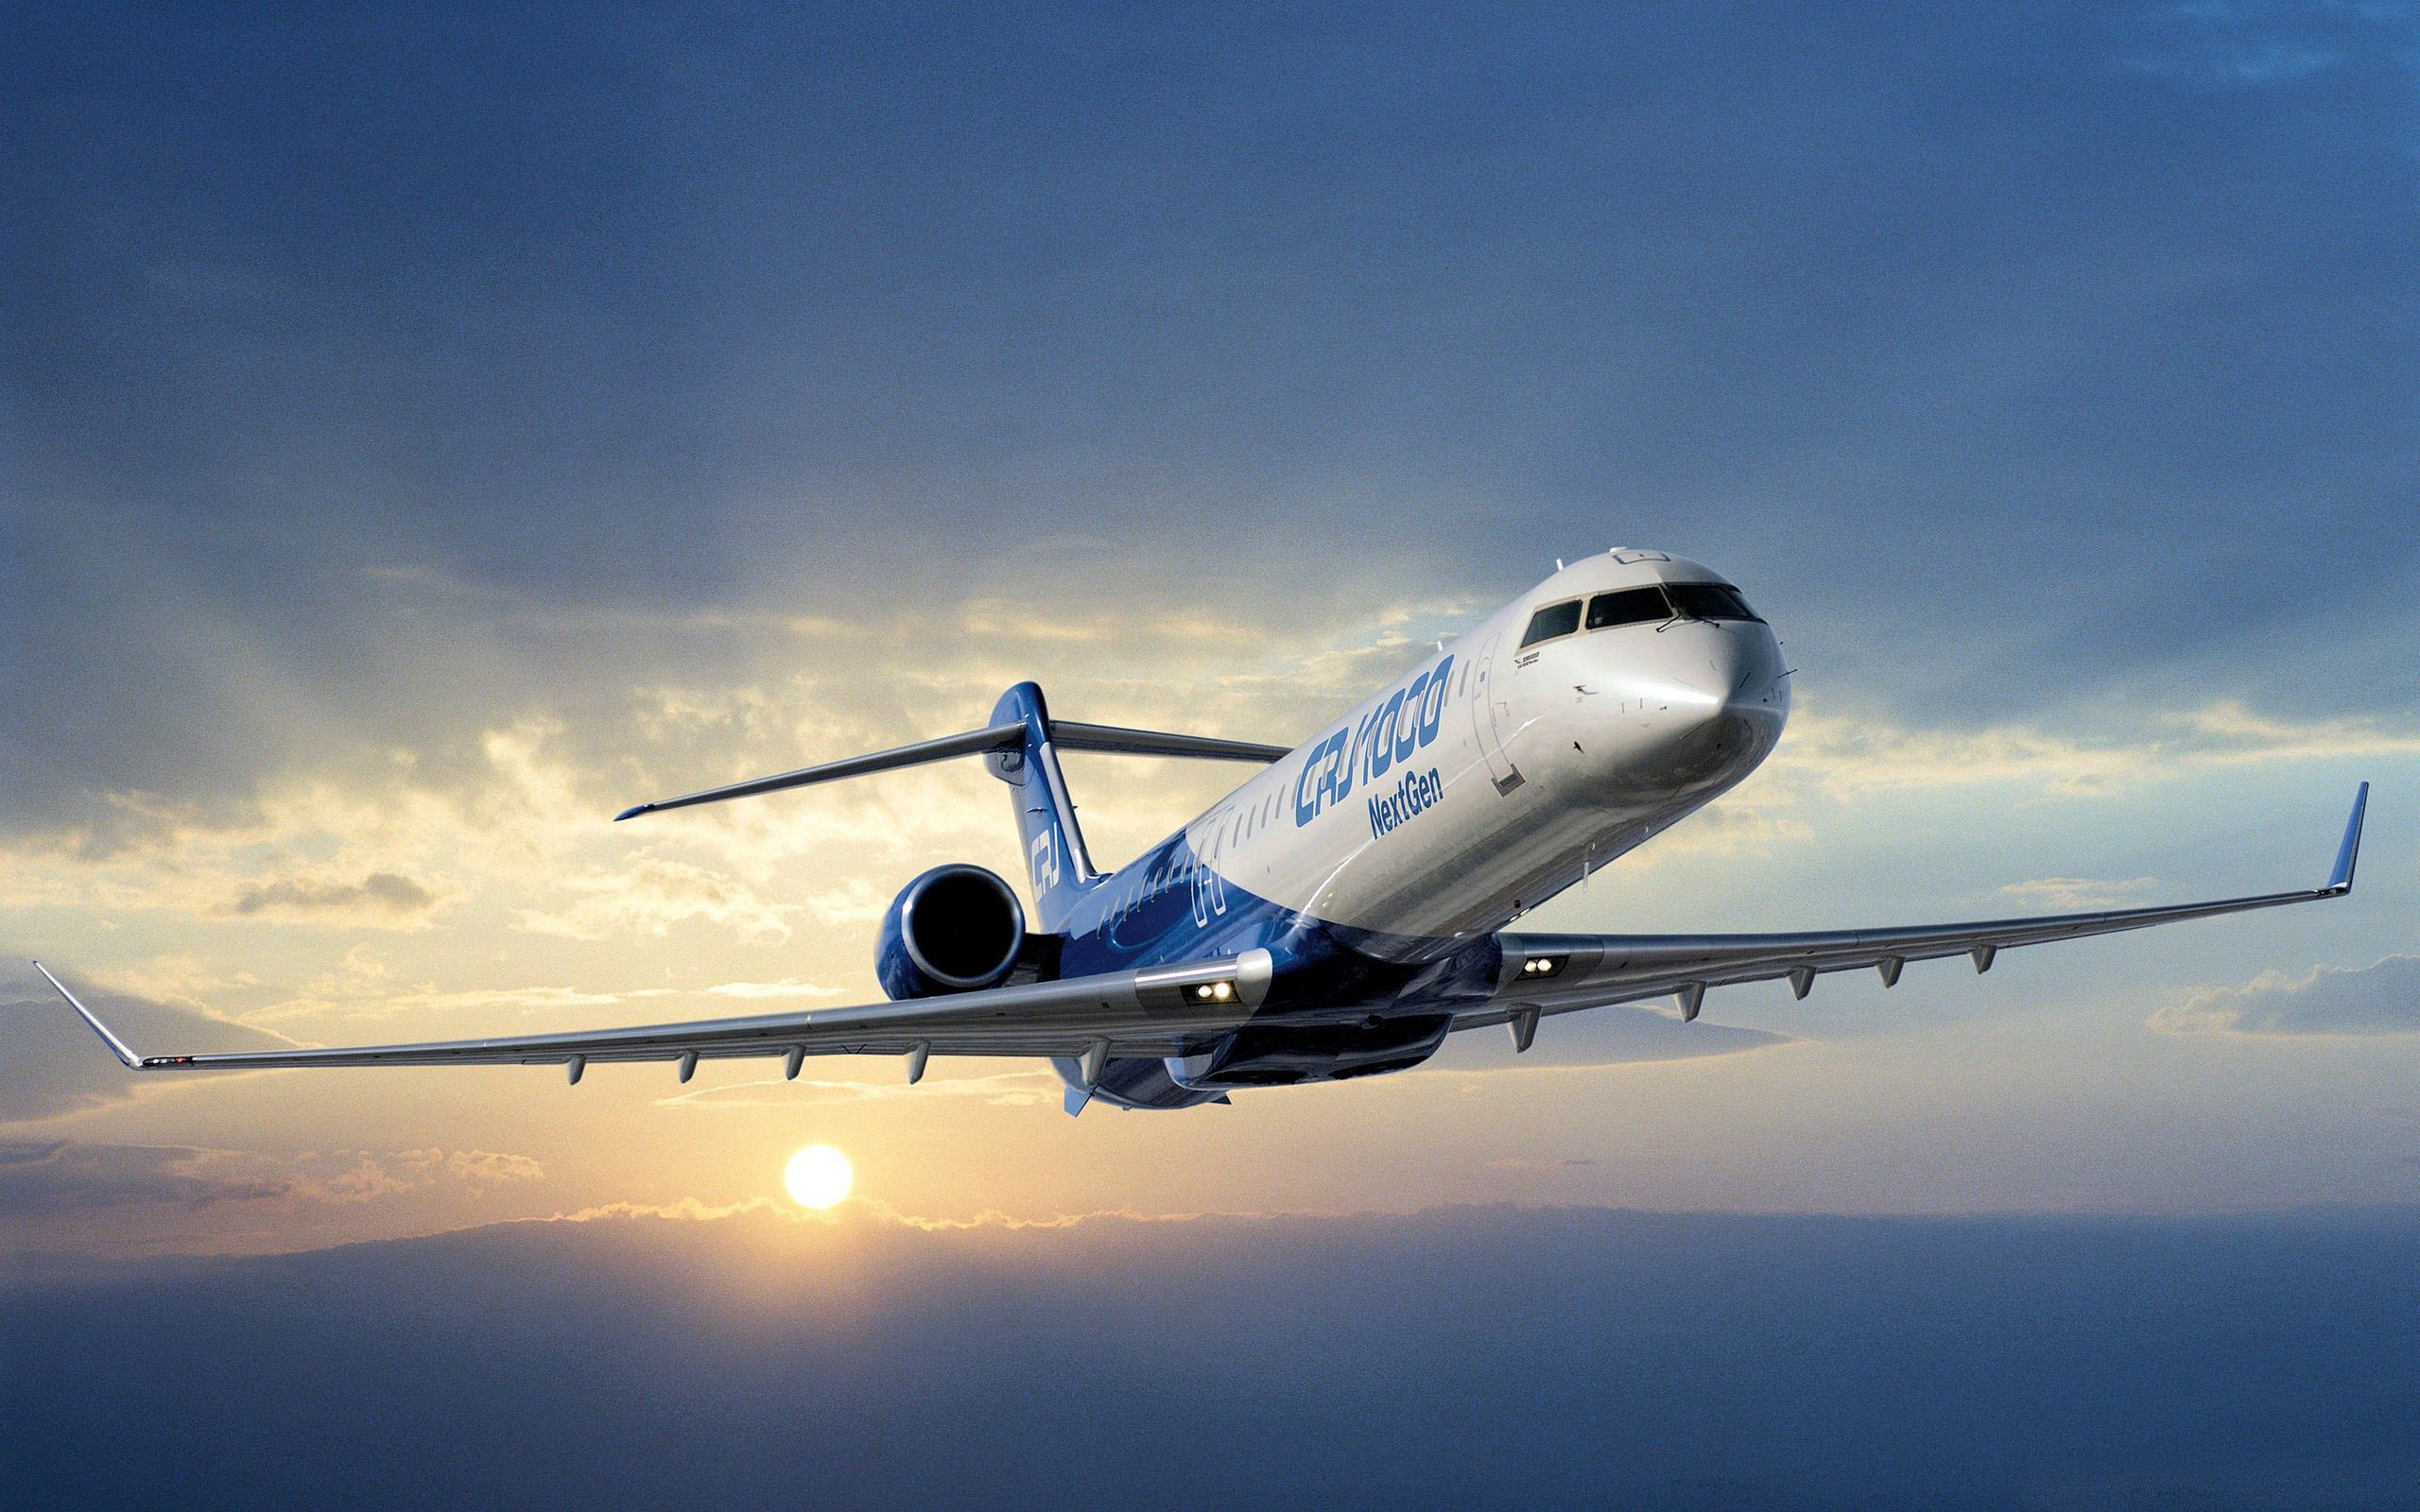 Popular Plane images for mobile phone